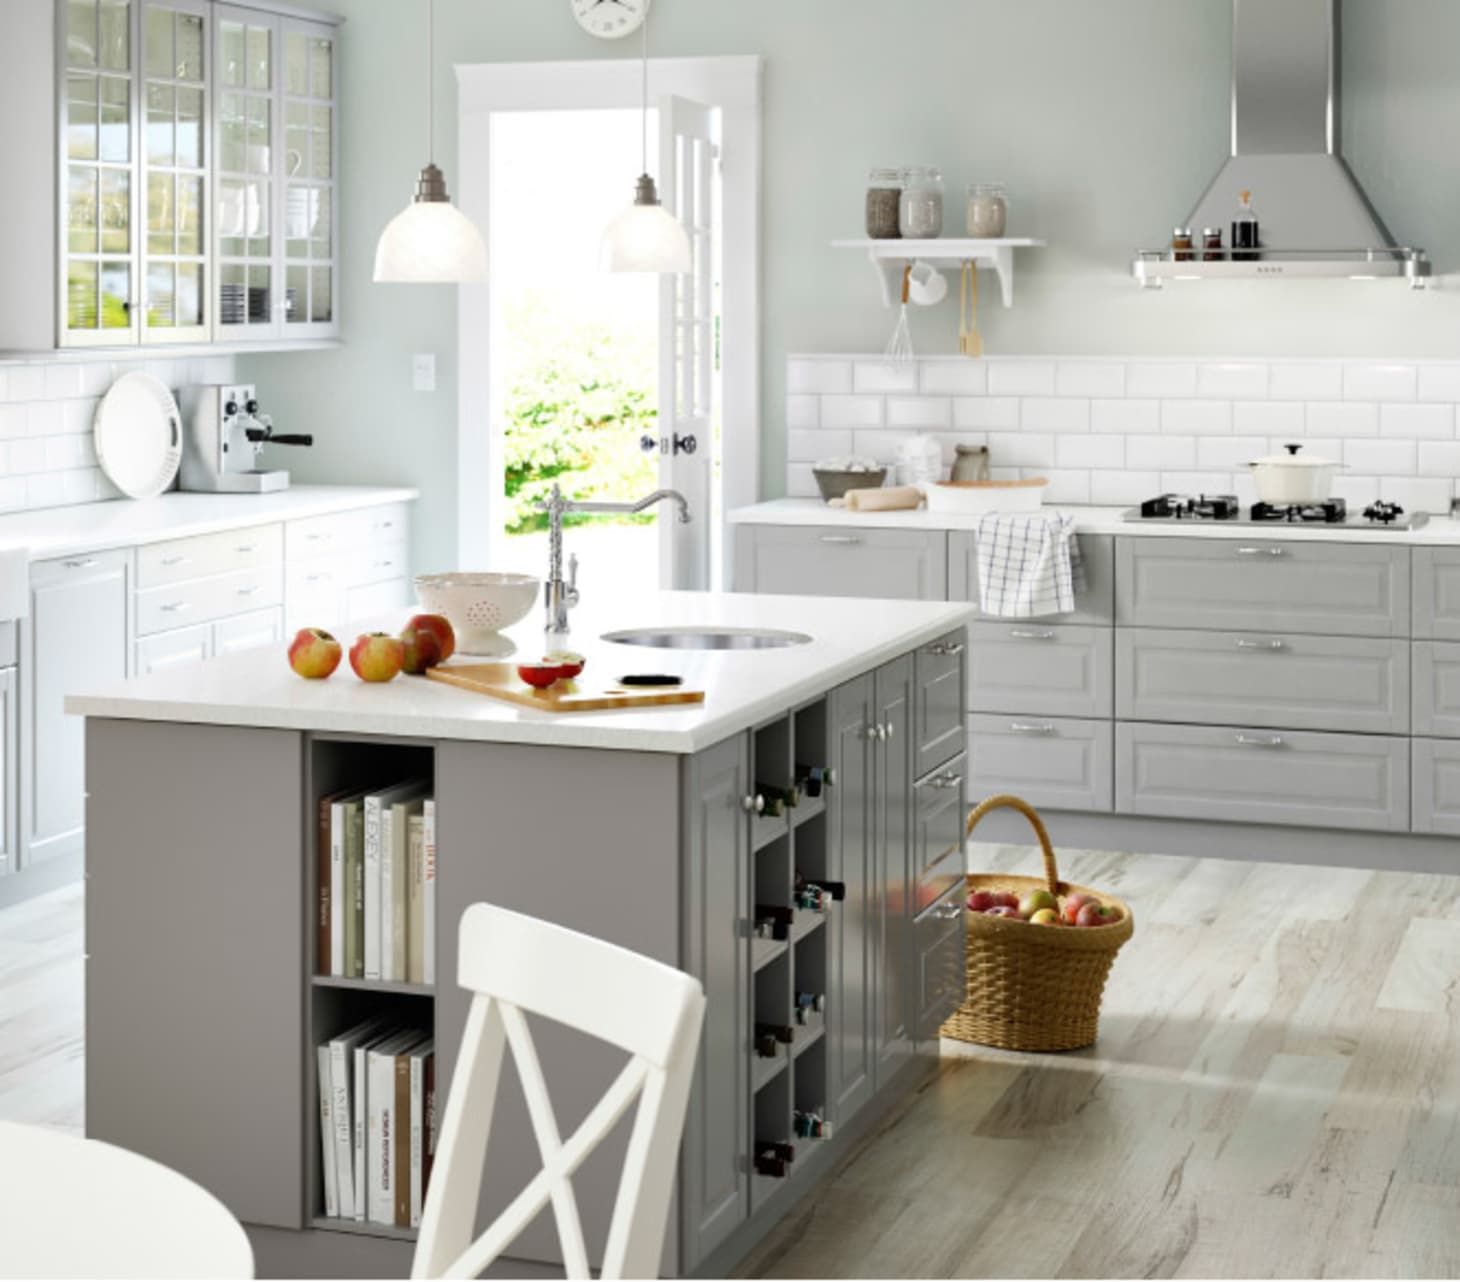 Ikea Kitchen: IKEA SEKTION New Kitchen Cabinet Guide: Photos, Prices